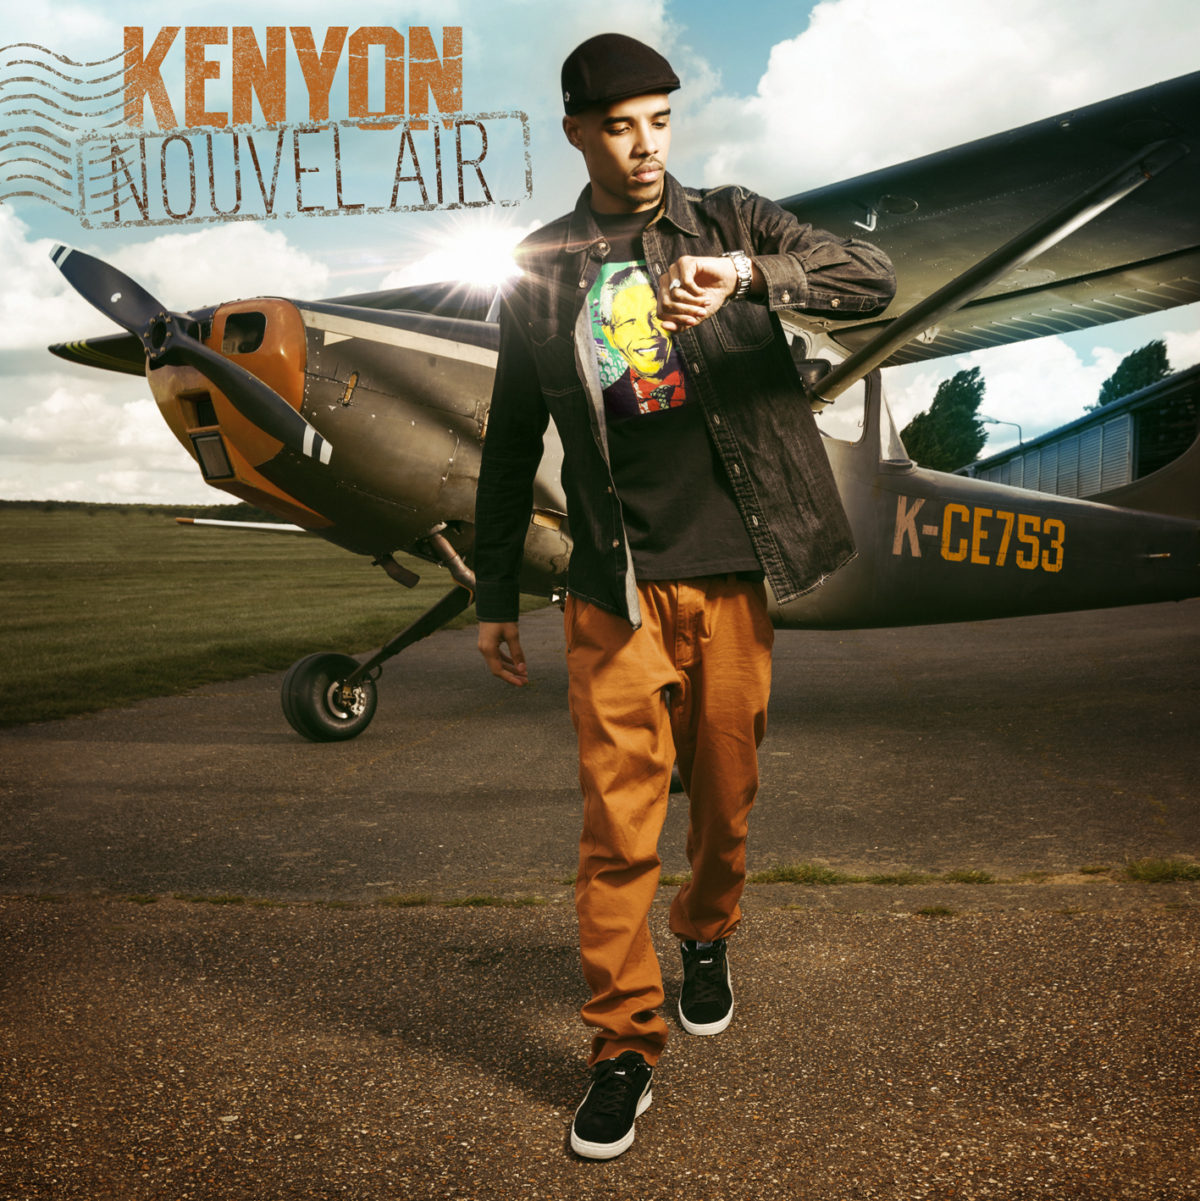 Nouvel air de Kenyon